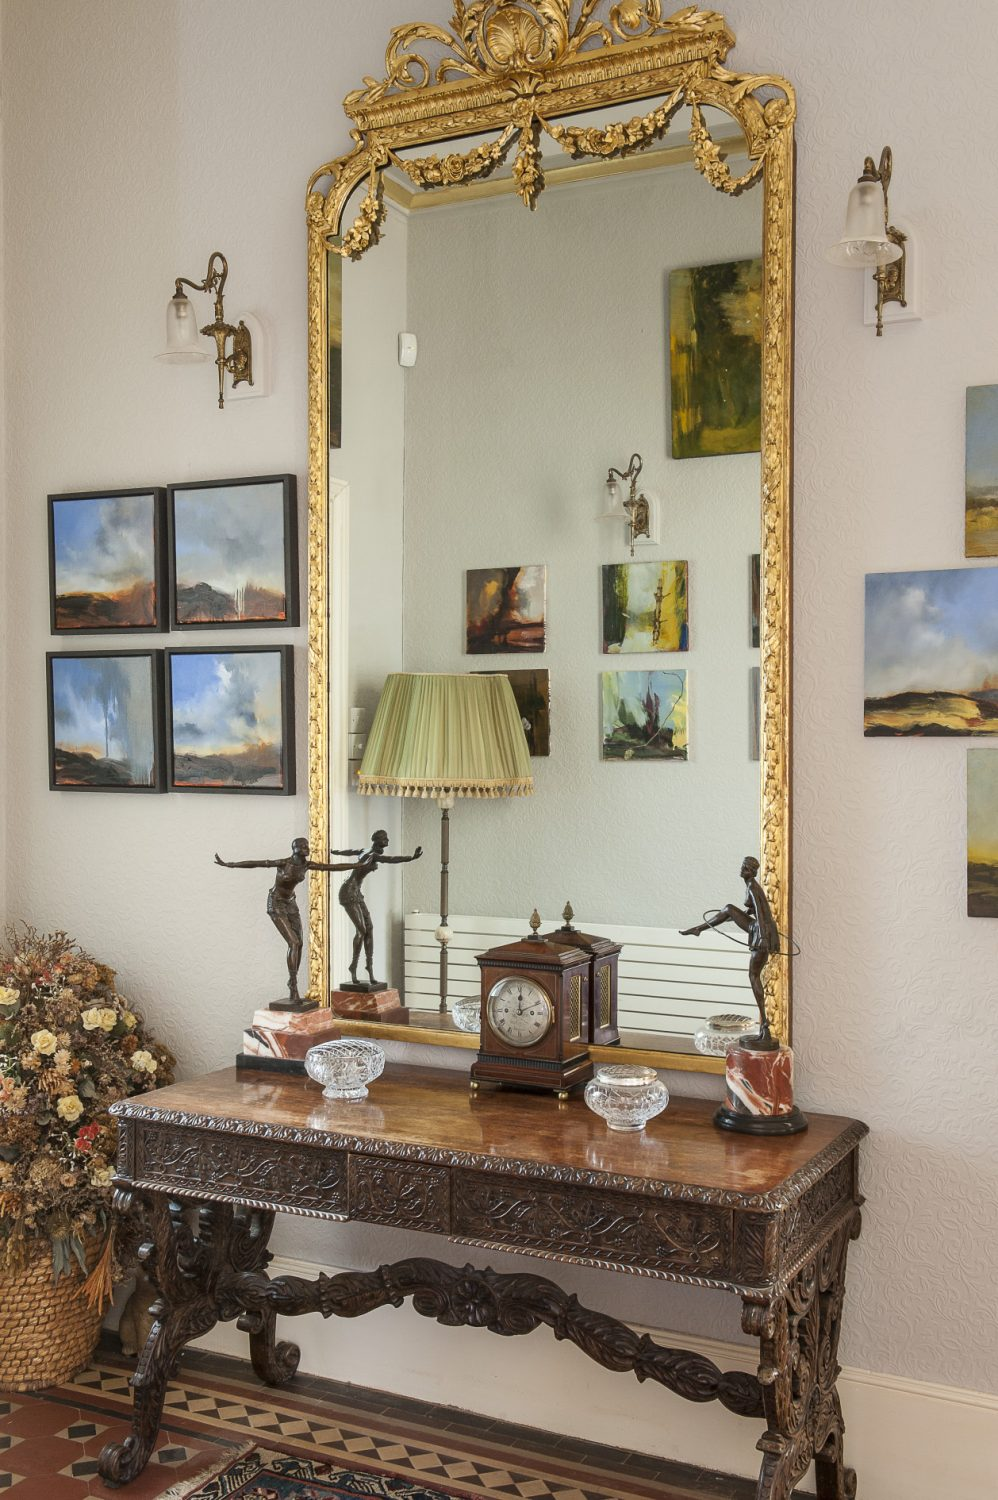 The large gilt mirror in the hallway reflects part of Ken's collection of Rankle